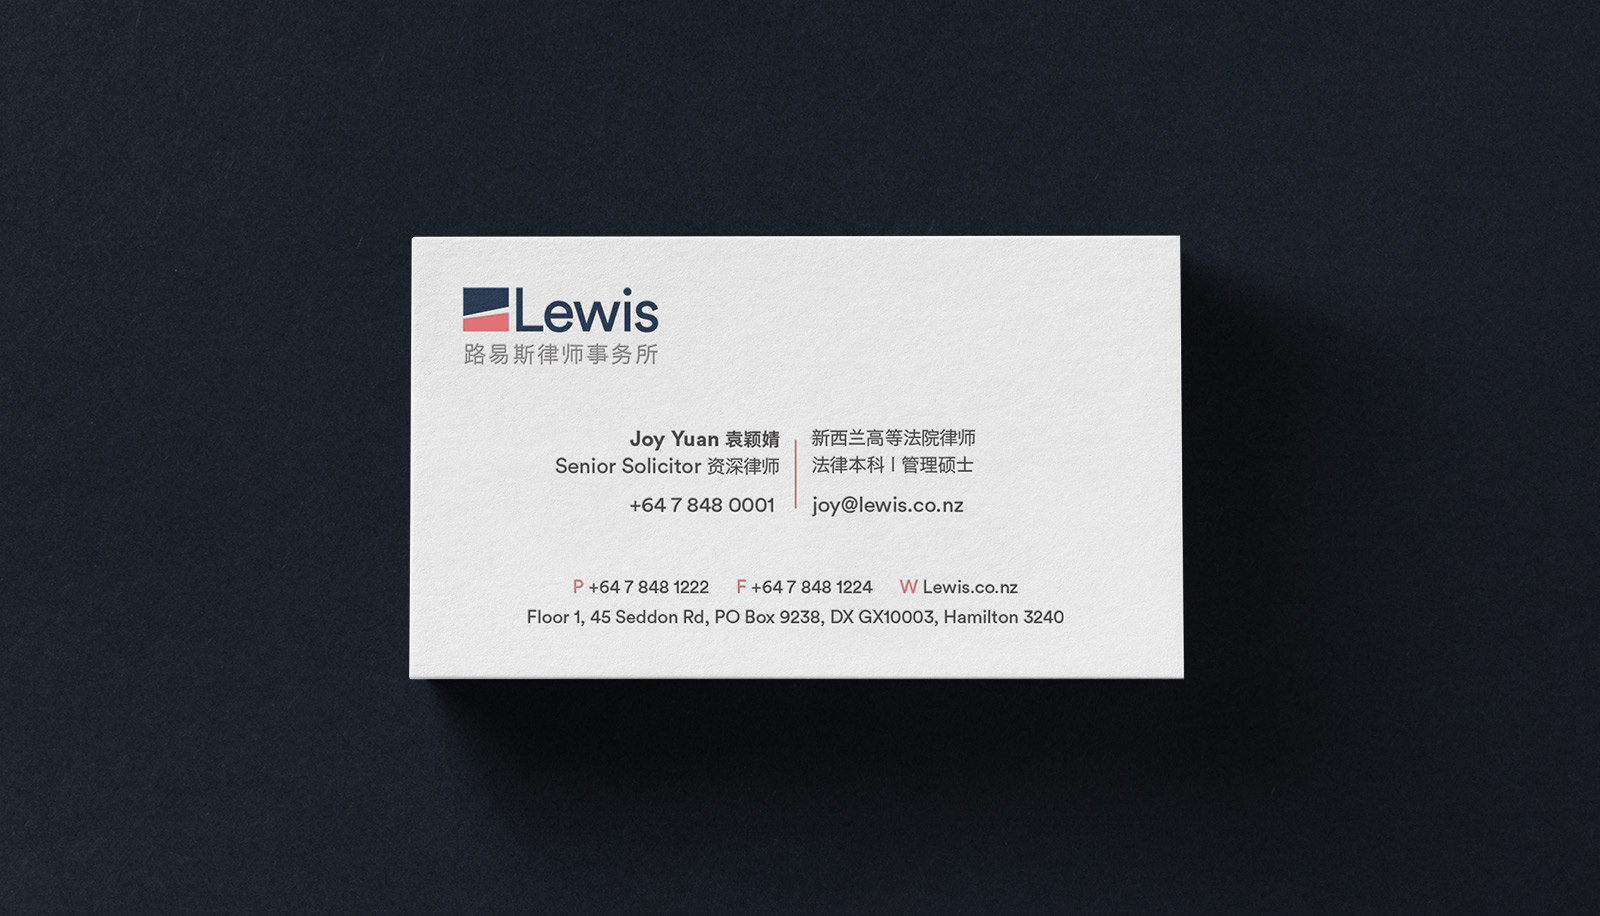 Lewis Lawyers - Pharaoh - Graphic Design